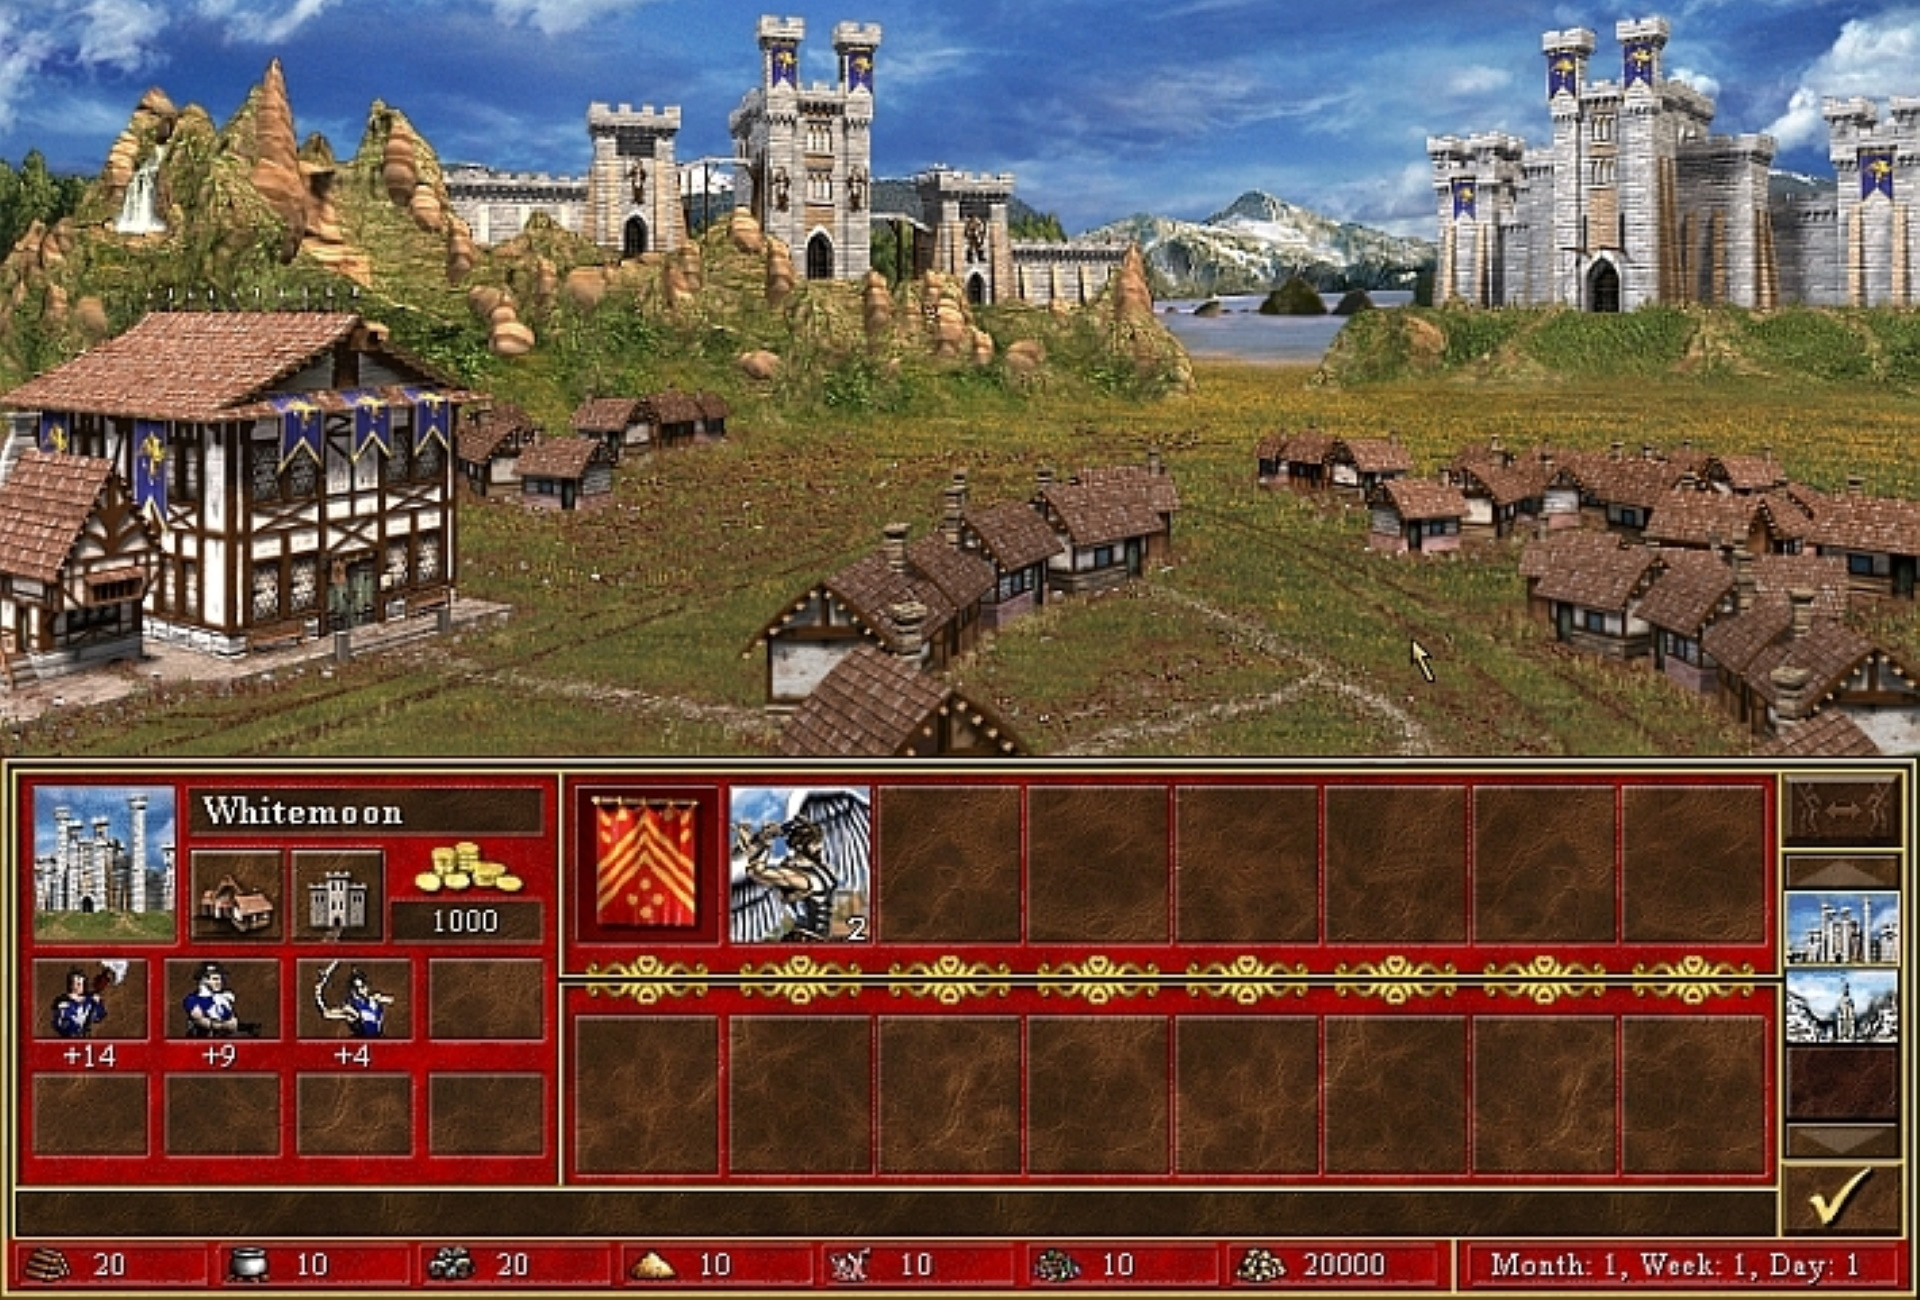 A screenshot of Heroes Of Might And Magic III.